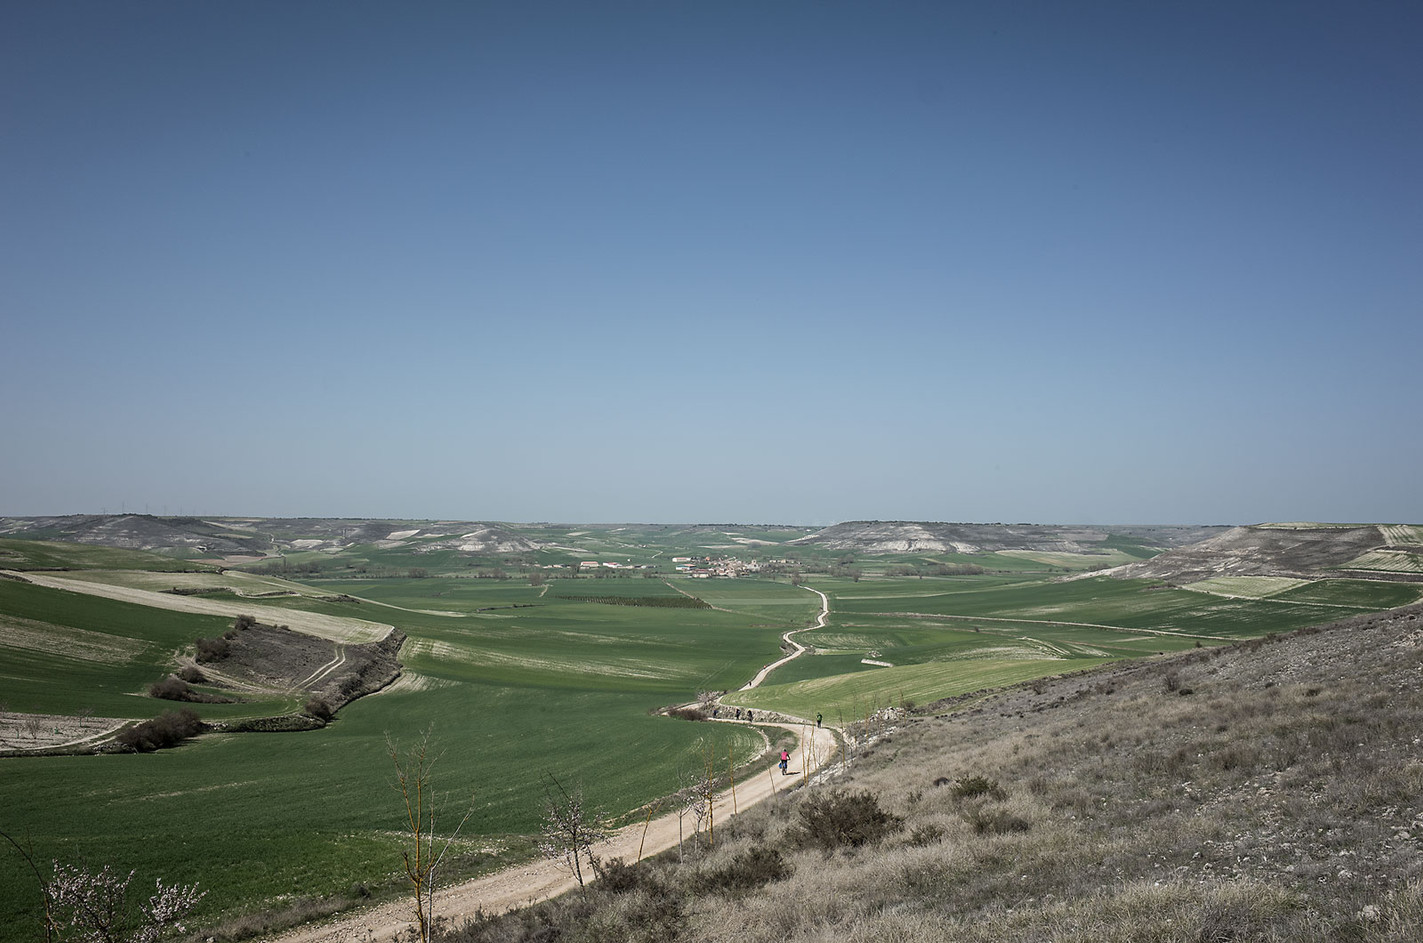 Situated between the wined hills of Rioja in the east to the wet mountains of Galicia in the west is the dry plateau of the Castilla y León, known as the Meseta. Temperatures in the summer can reach over 40C/105F, where the absence of trees offers no relief from the sun.